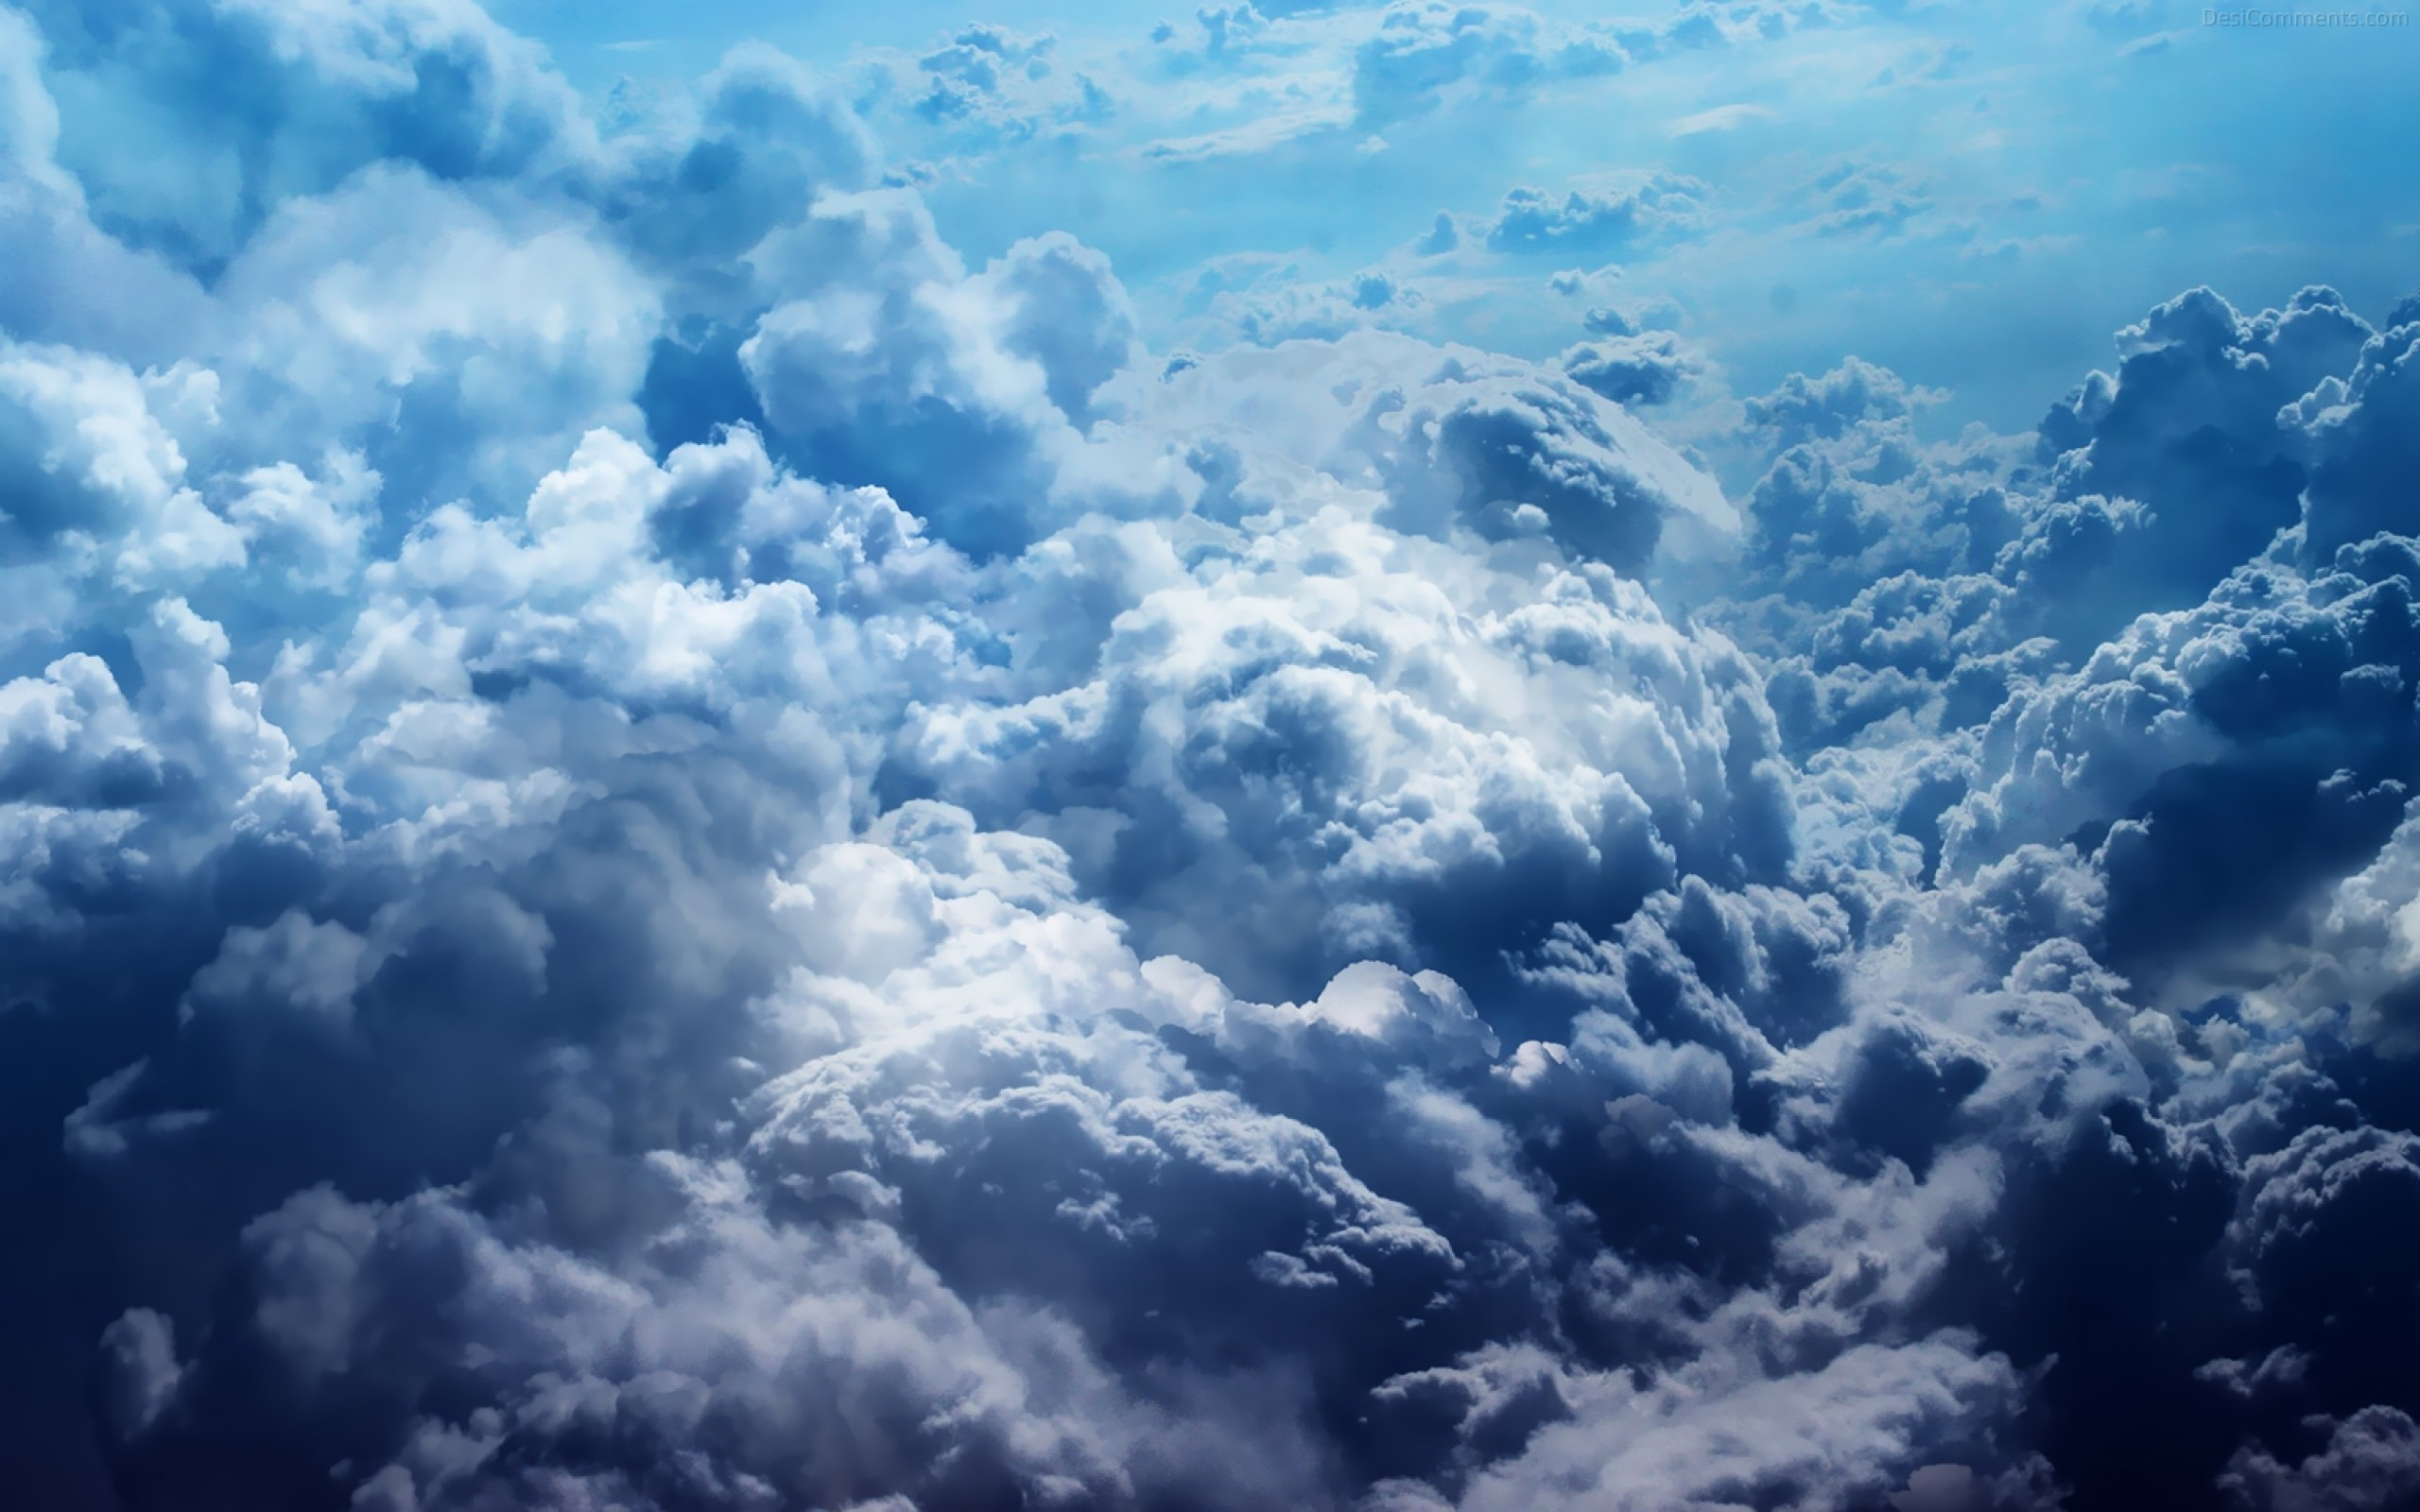 Sky Clouds - Wallpapers | DesiComments.com